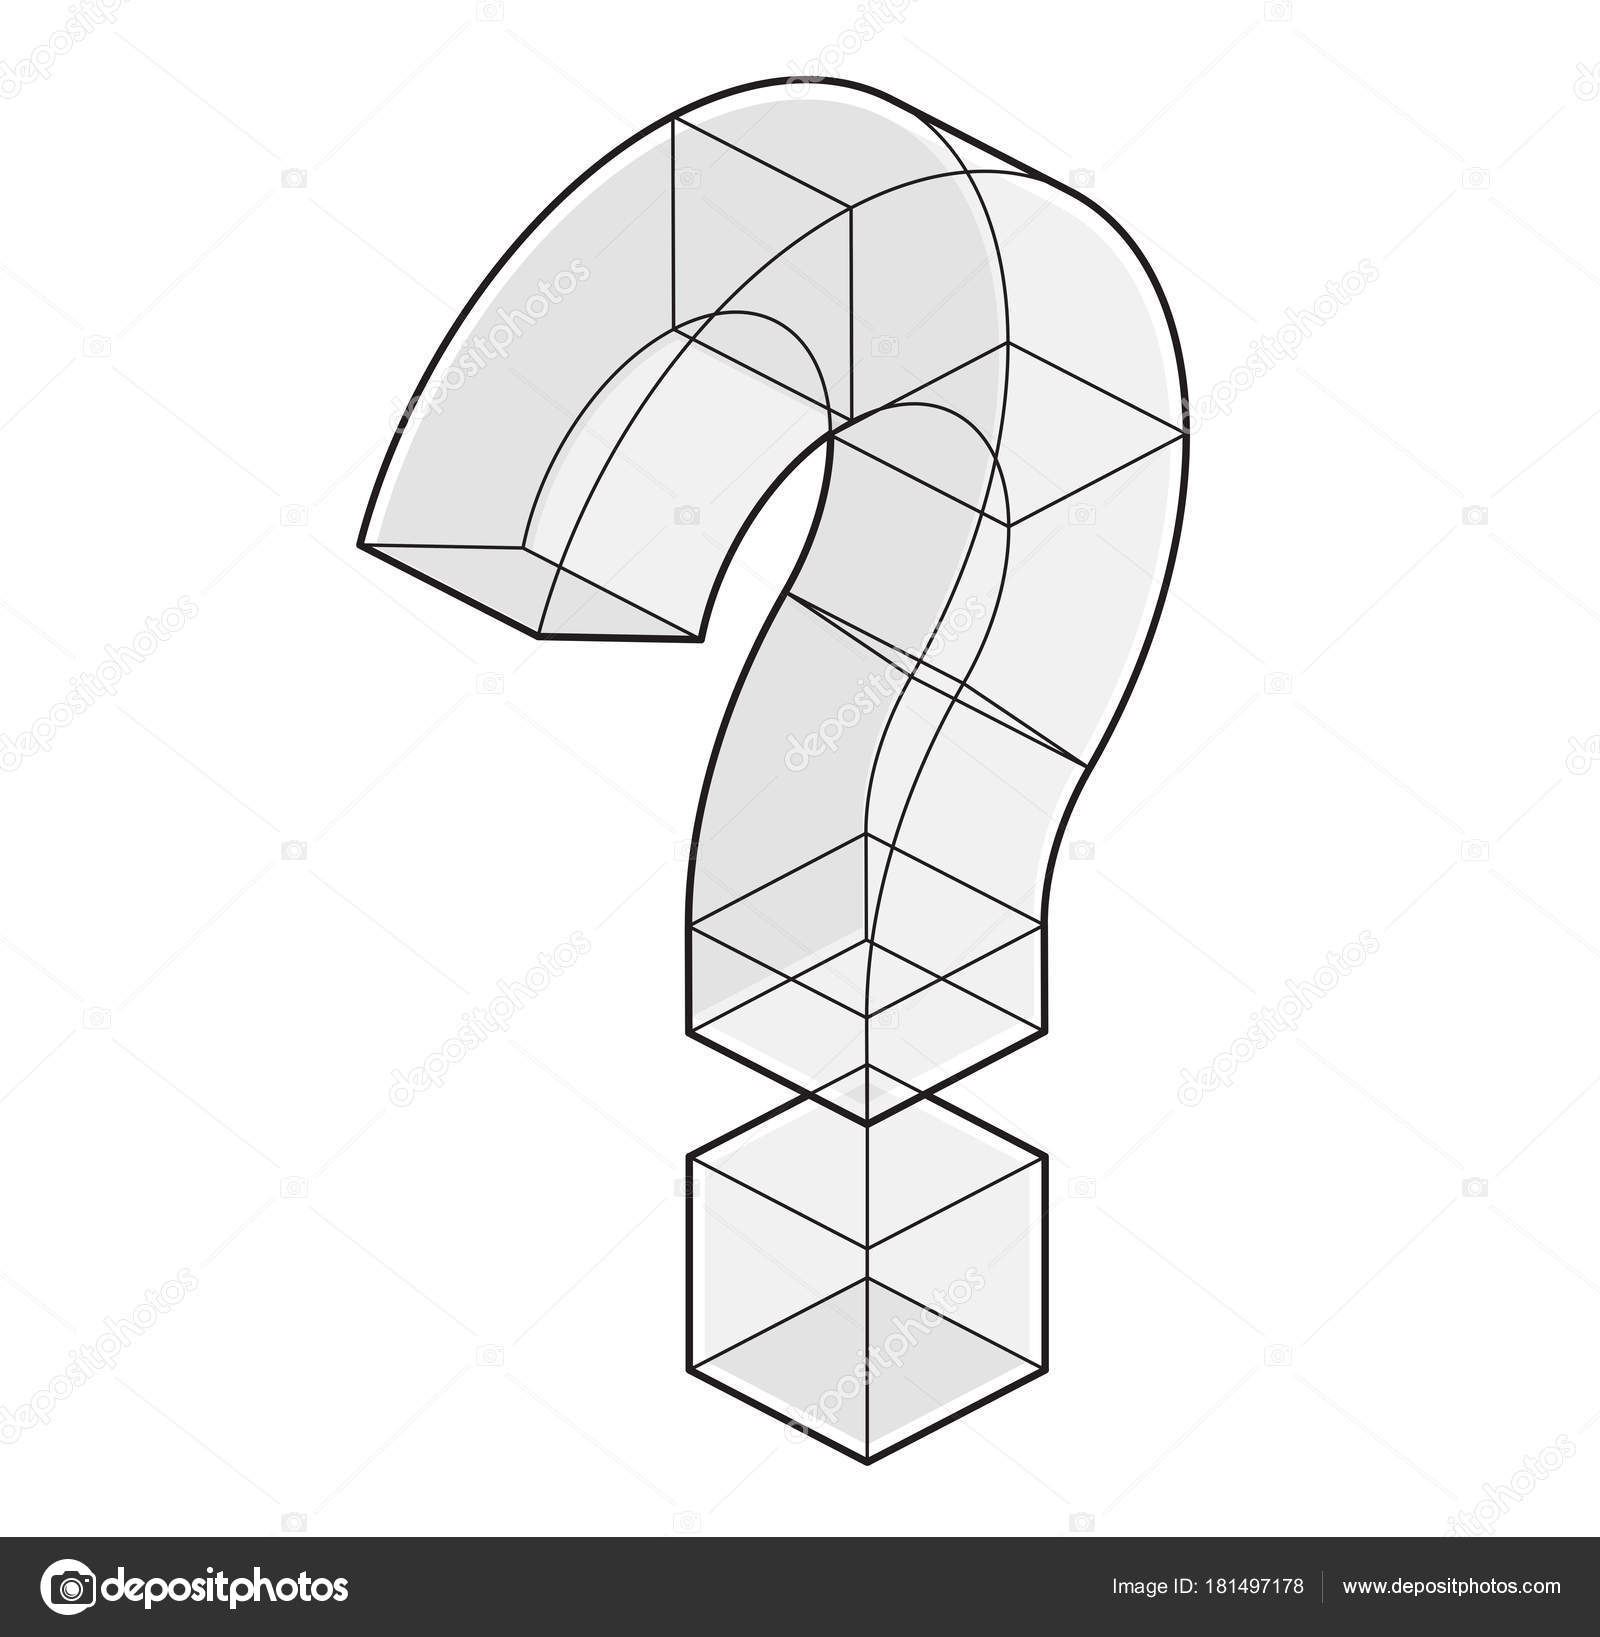 Outlined Question Mark Isometric Perspective Isolated White ...